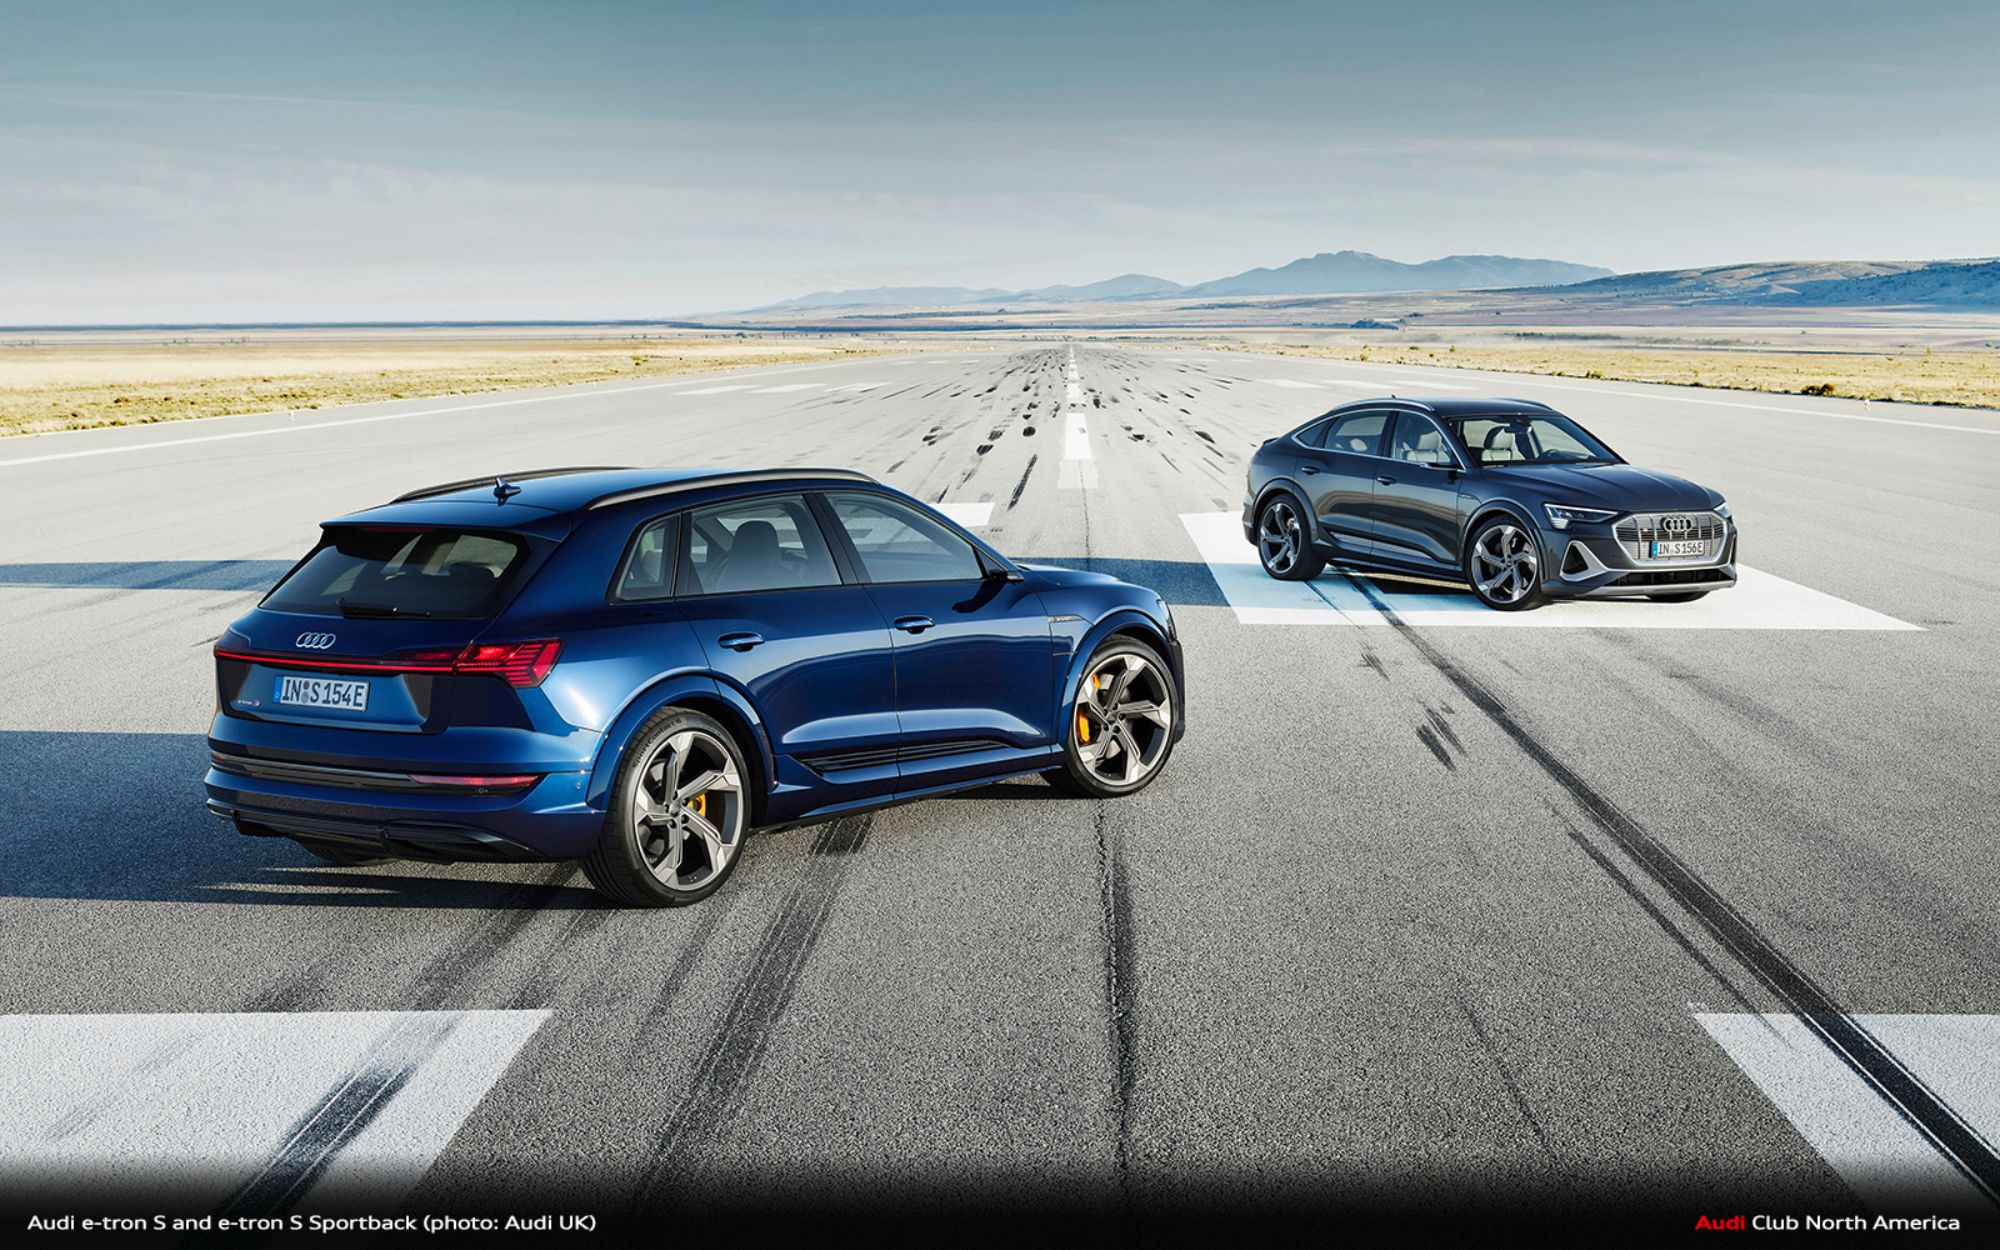 First Look: Audi e-tron S and e-tron S Sportback